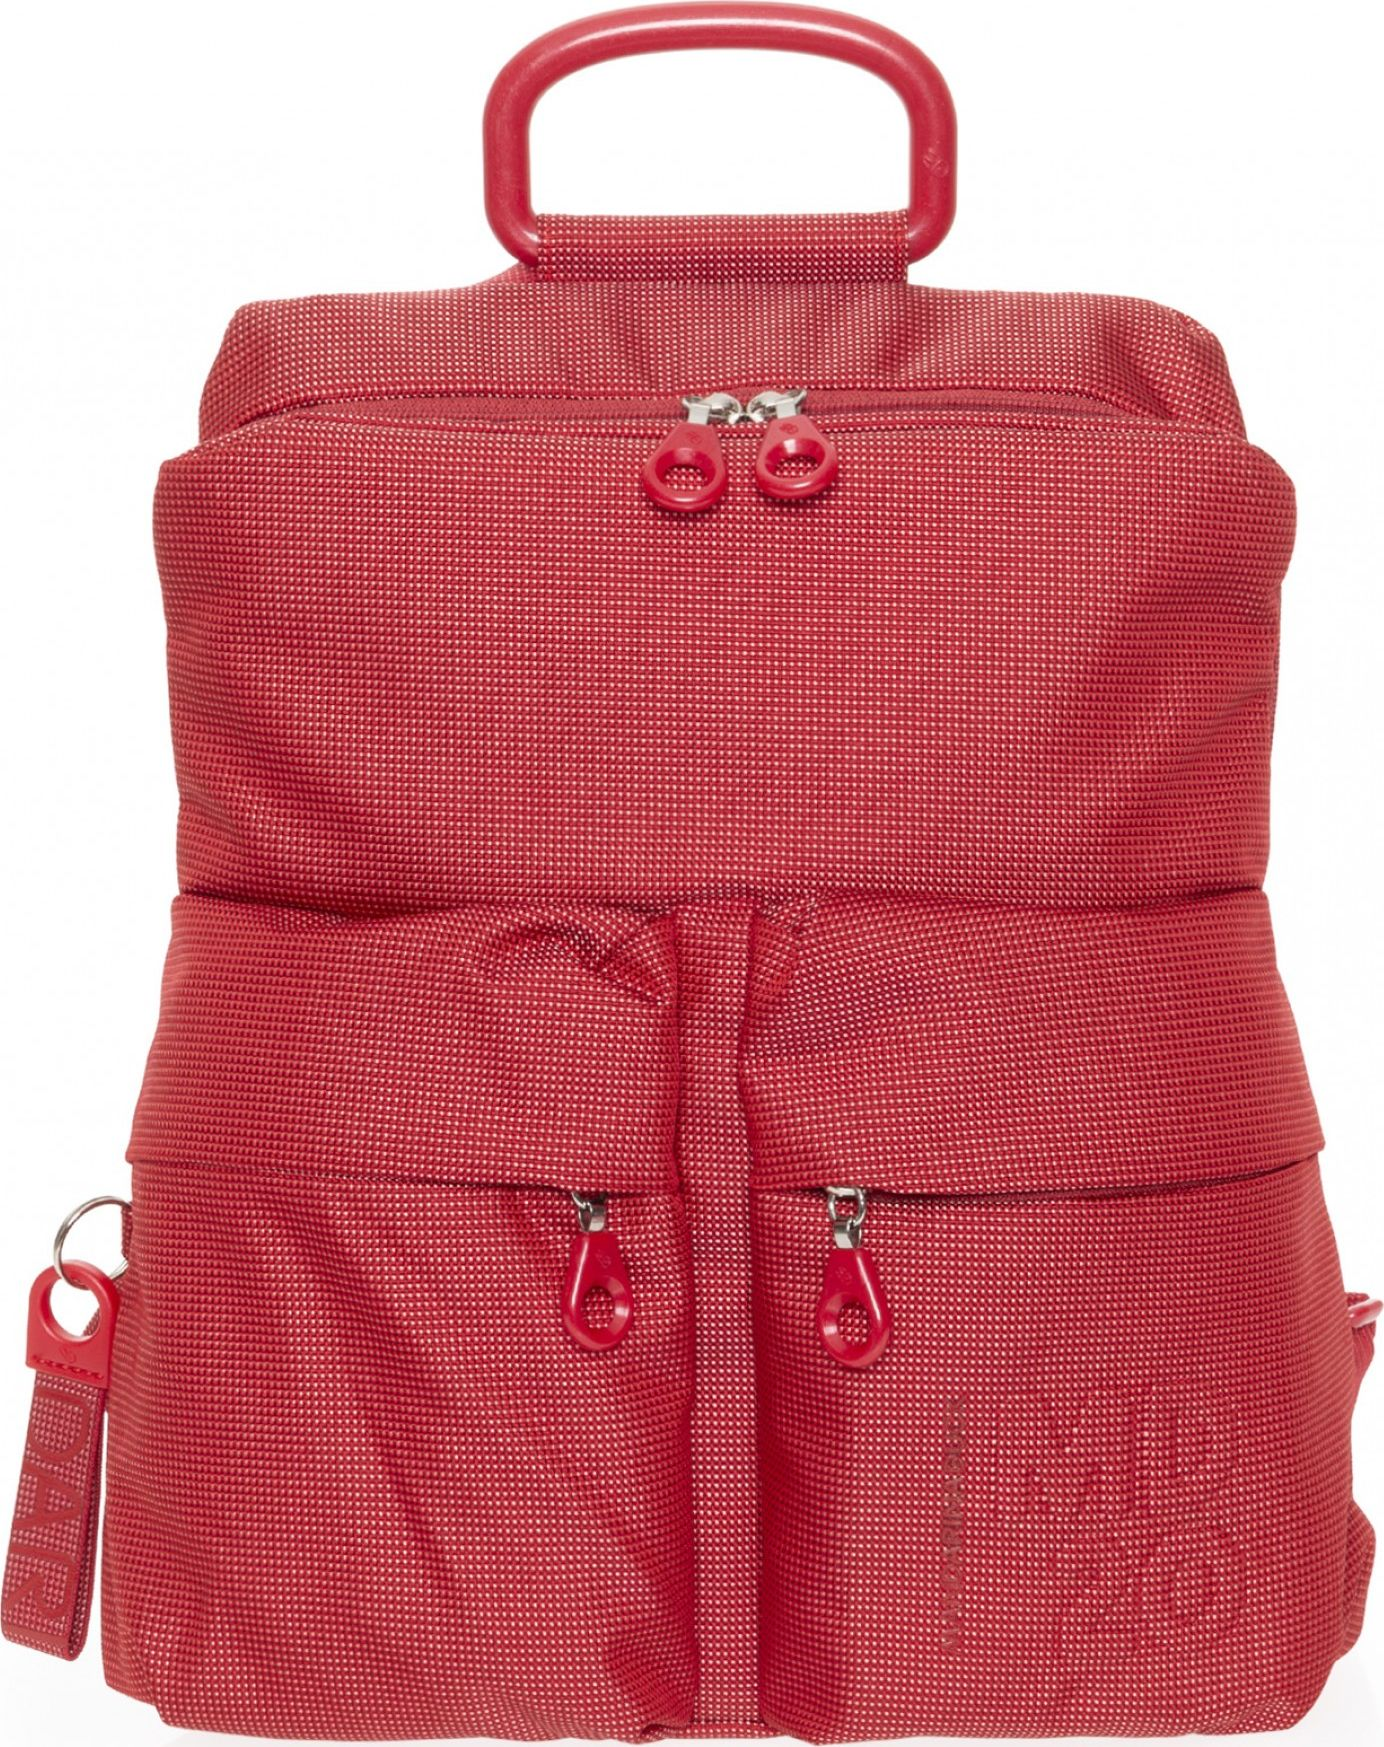 MANDARINA DUCK MD20 Tracolla P10QMTZ4 Flame Scarlet One Size